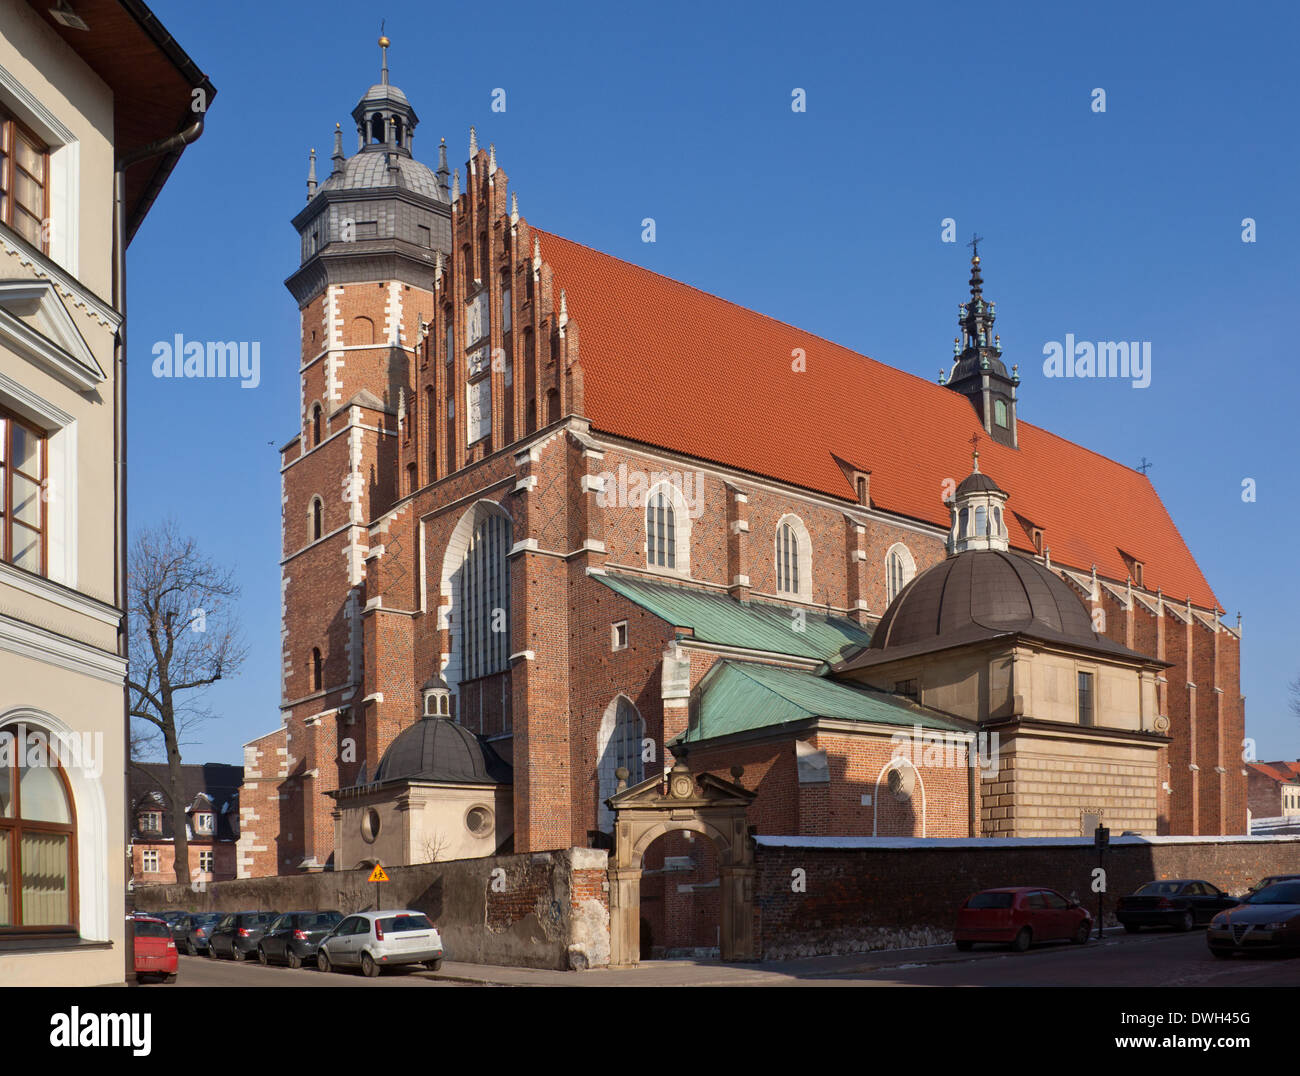 Corpus Christi Church in the Kazimierz district of Krakow in Poland. Dates from 1340. - Stock Image